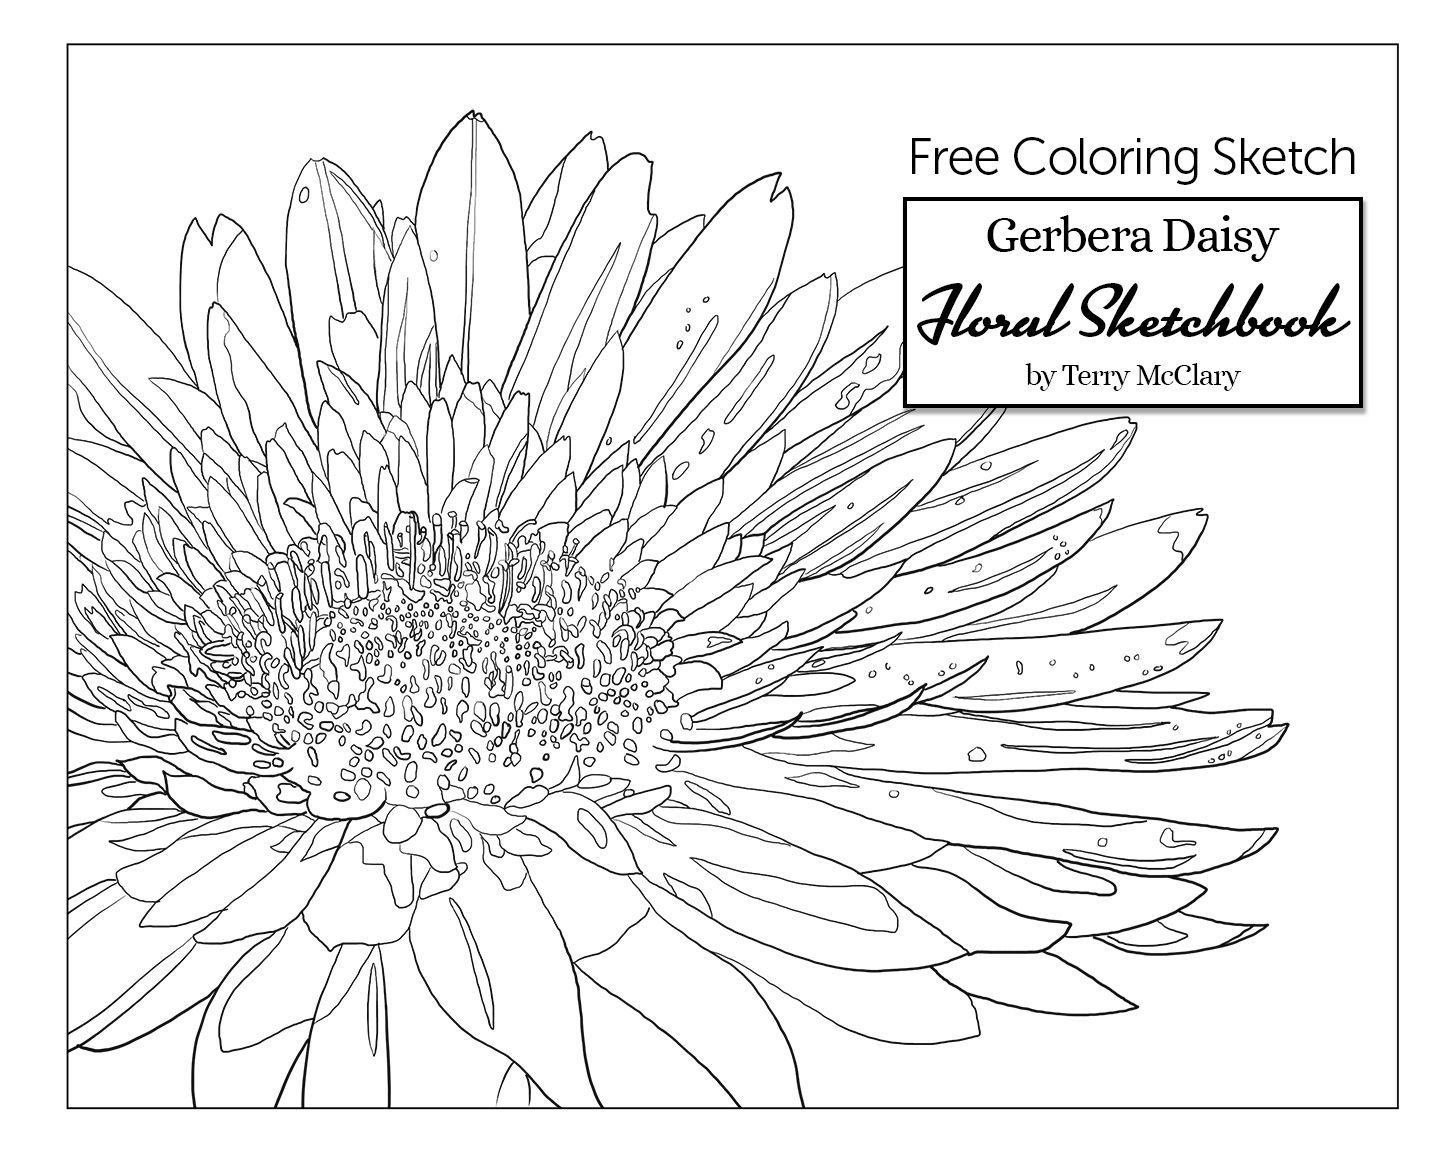 Free adult coloring page gerbera daisy floral sketchbook adult